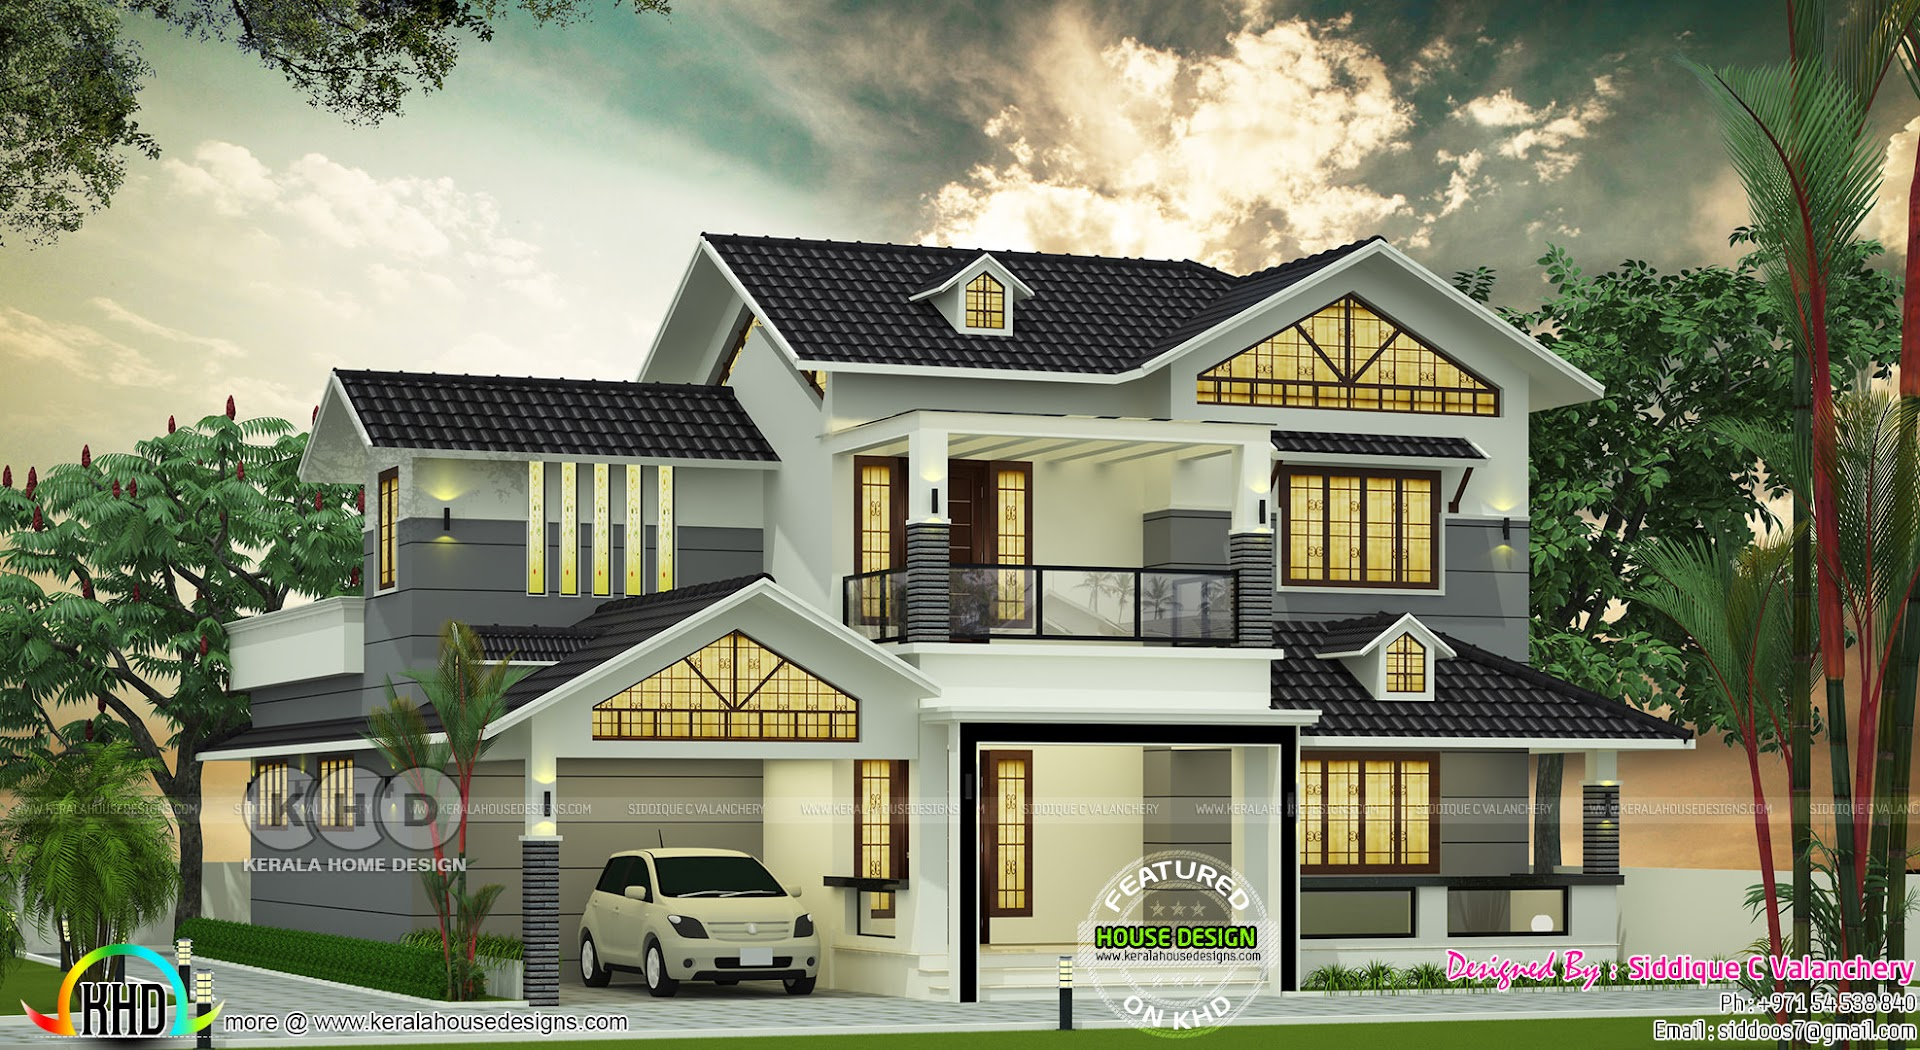 Nice Looking Sloping Roof 4 Bedroom House 2390 Sq Ft Kerala Home Design And Floor Plans 8000 Houses